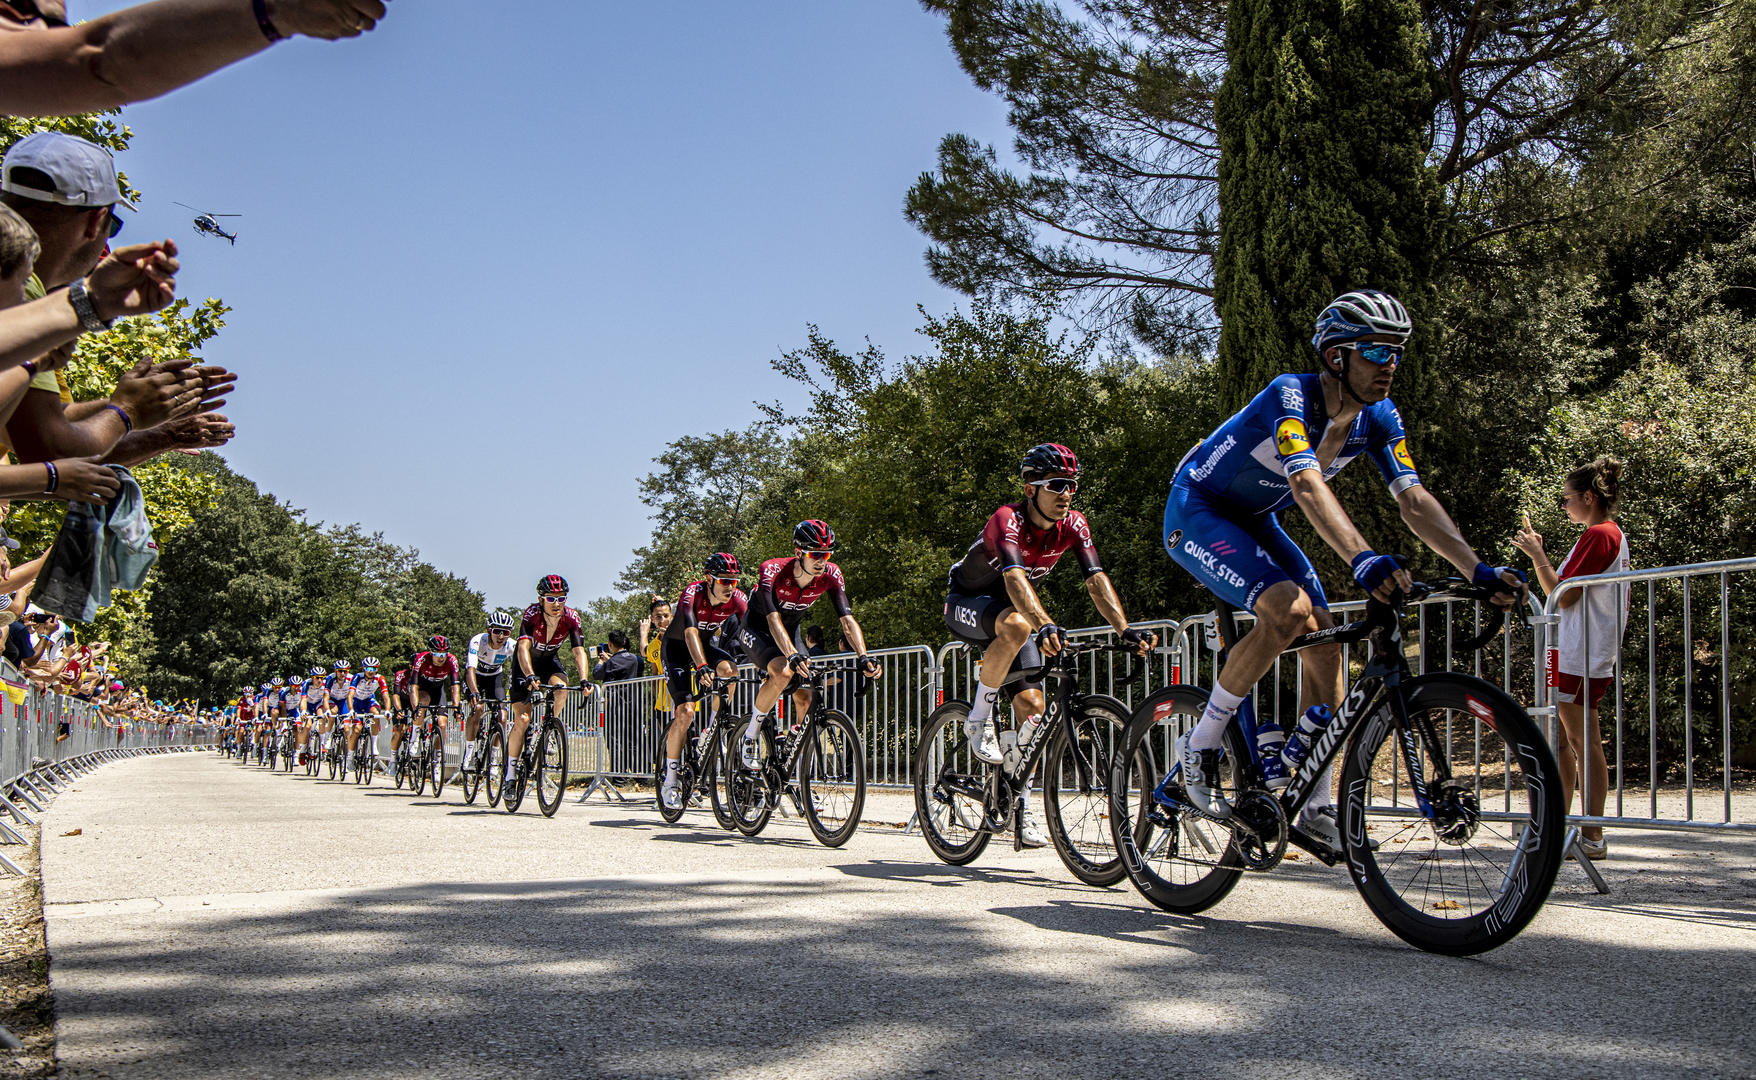 Road Cycle Racing - Sport photo contest | Photocrowd photo